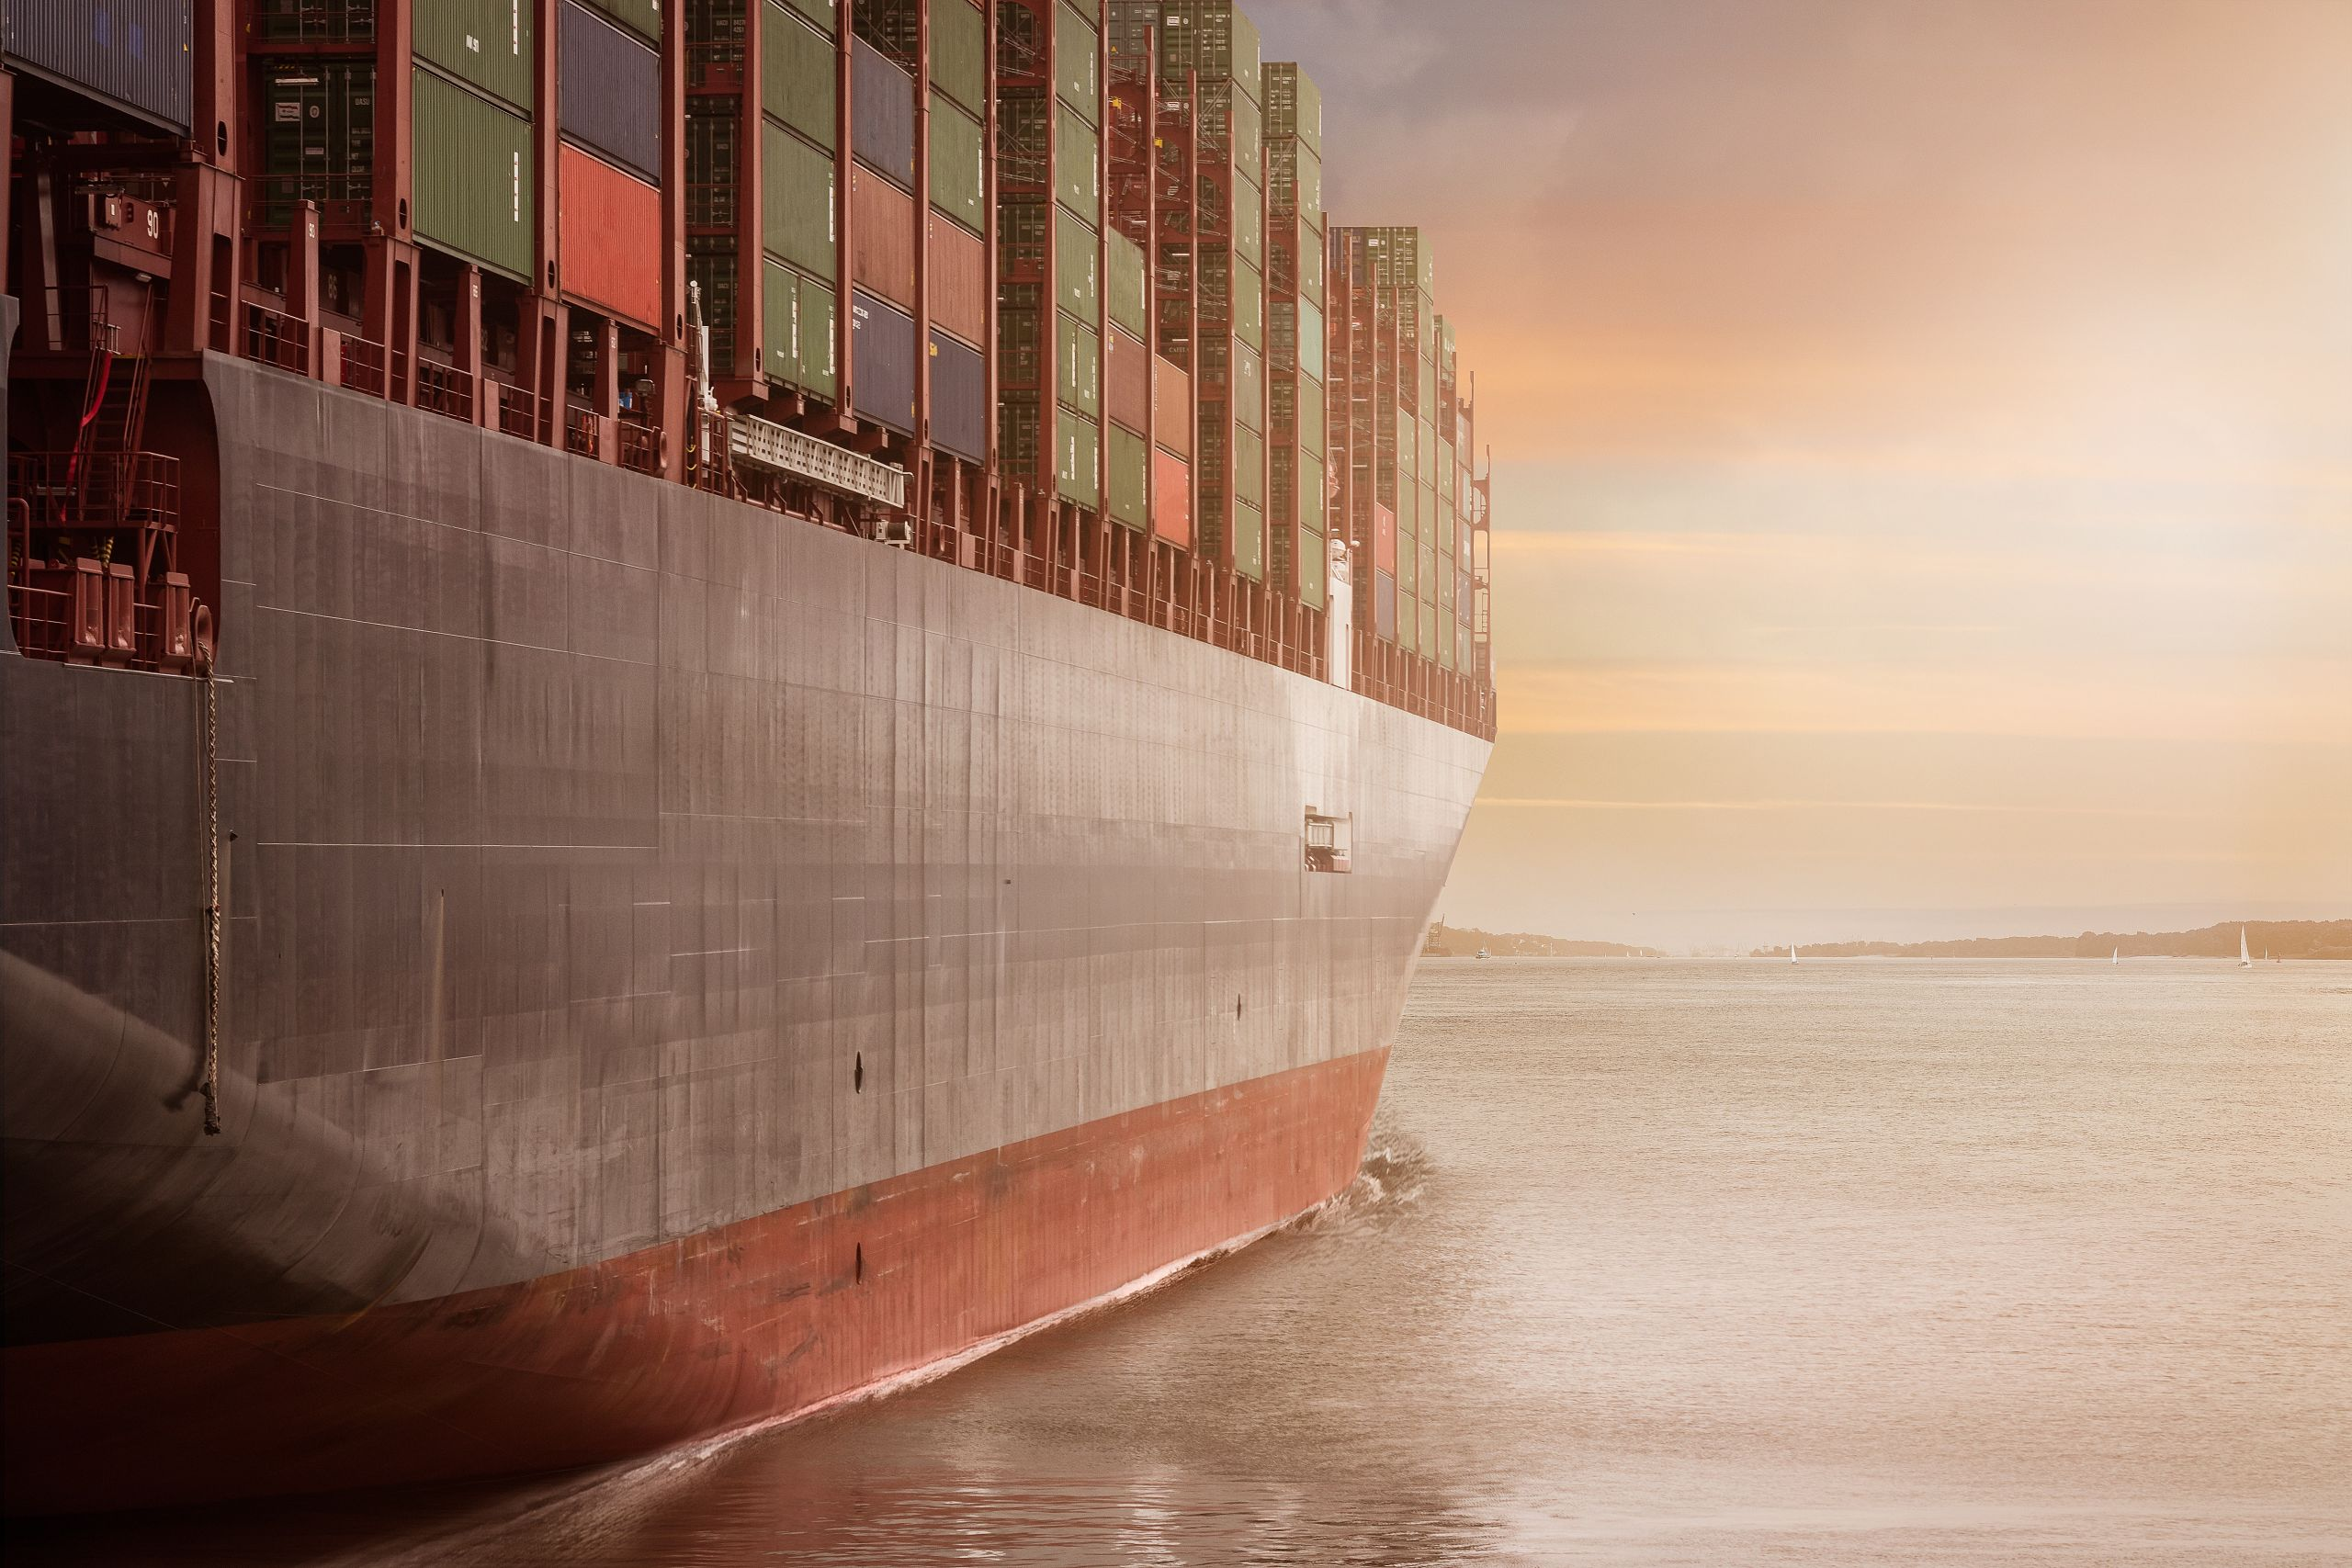 Ship filled with cargo containers